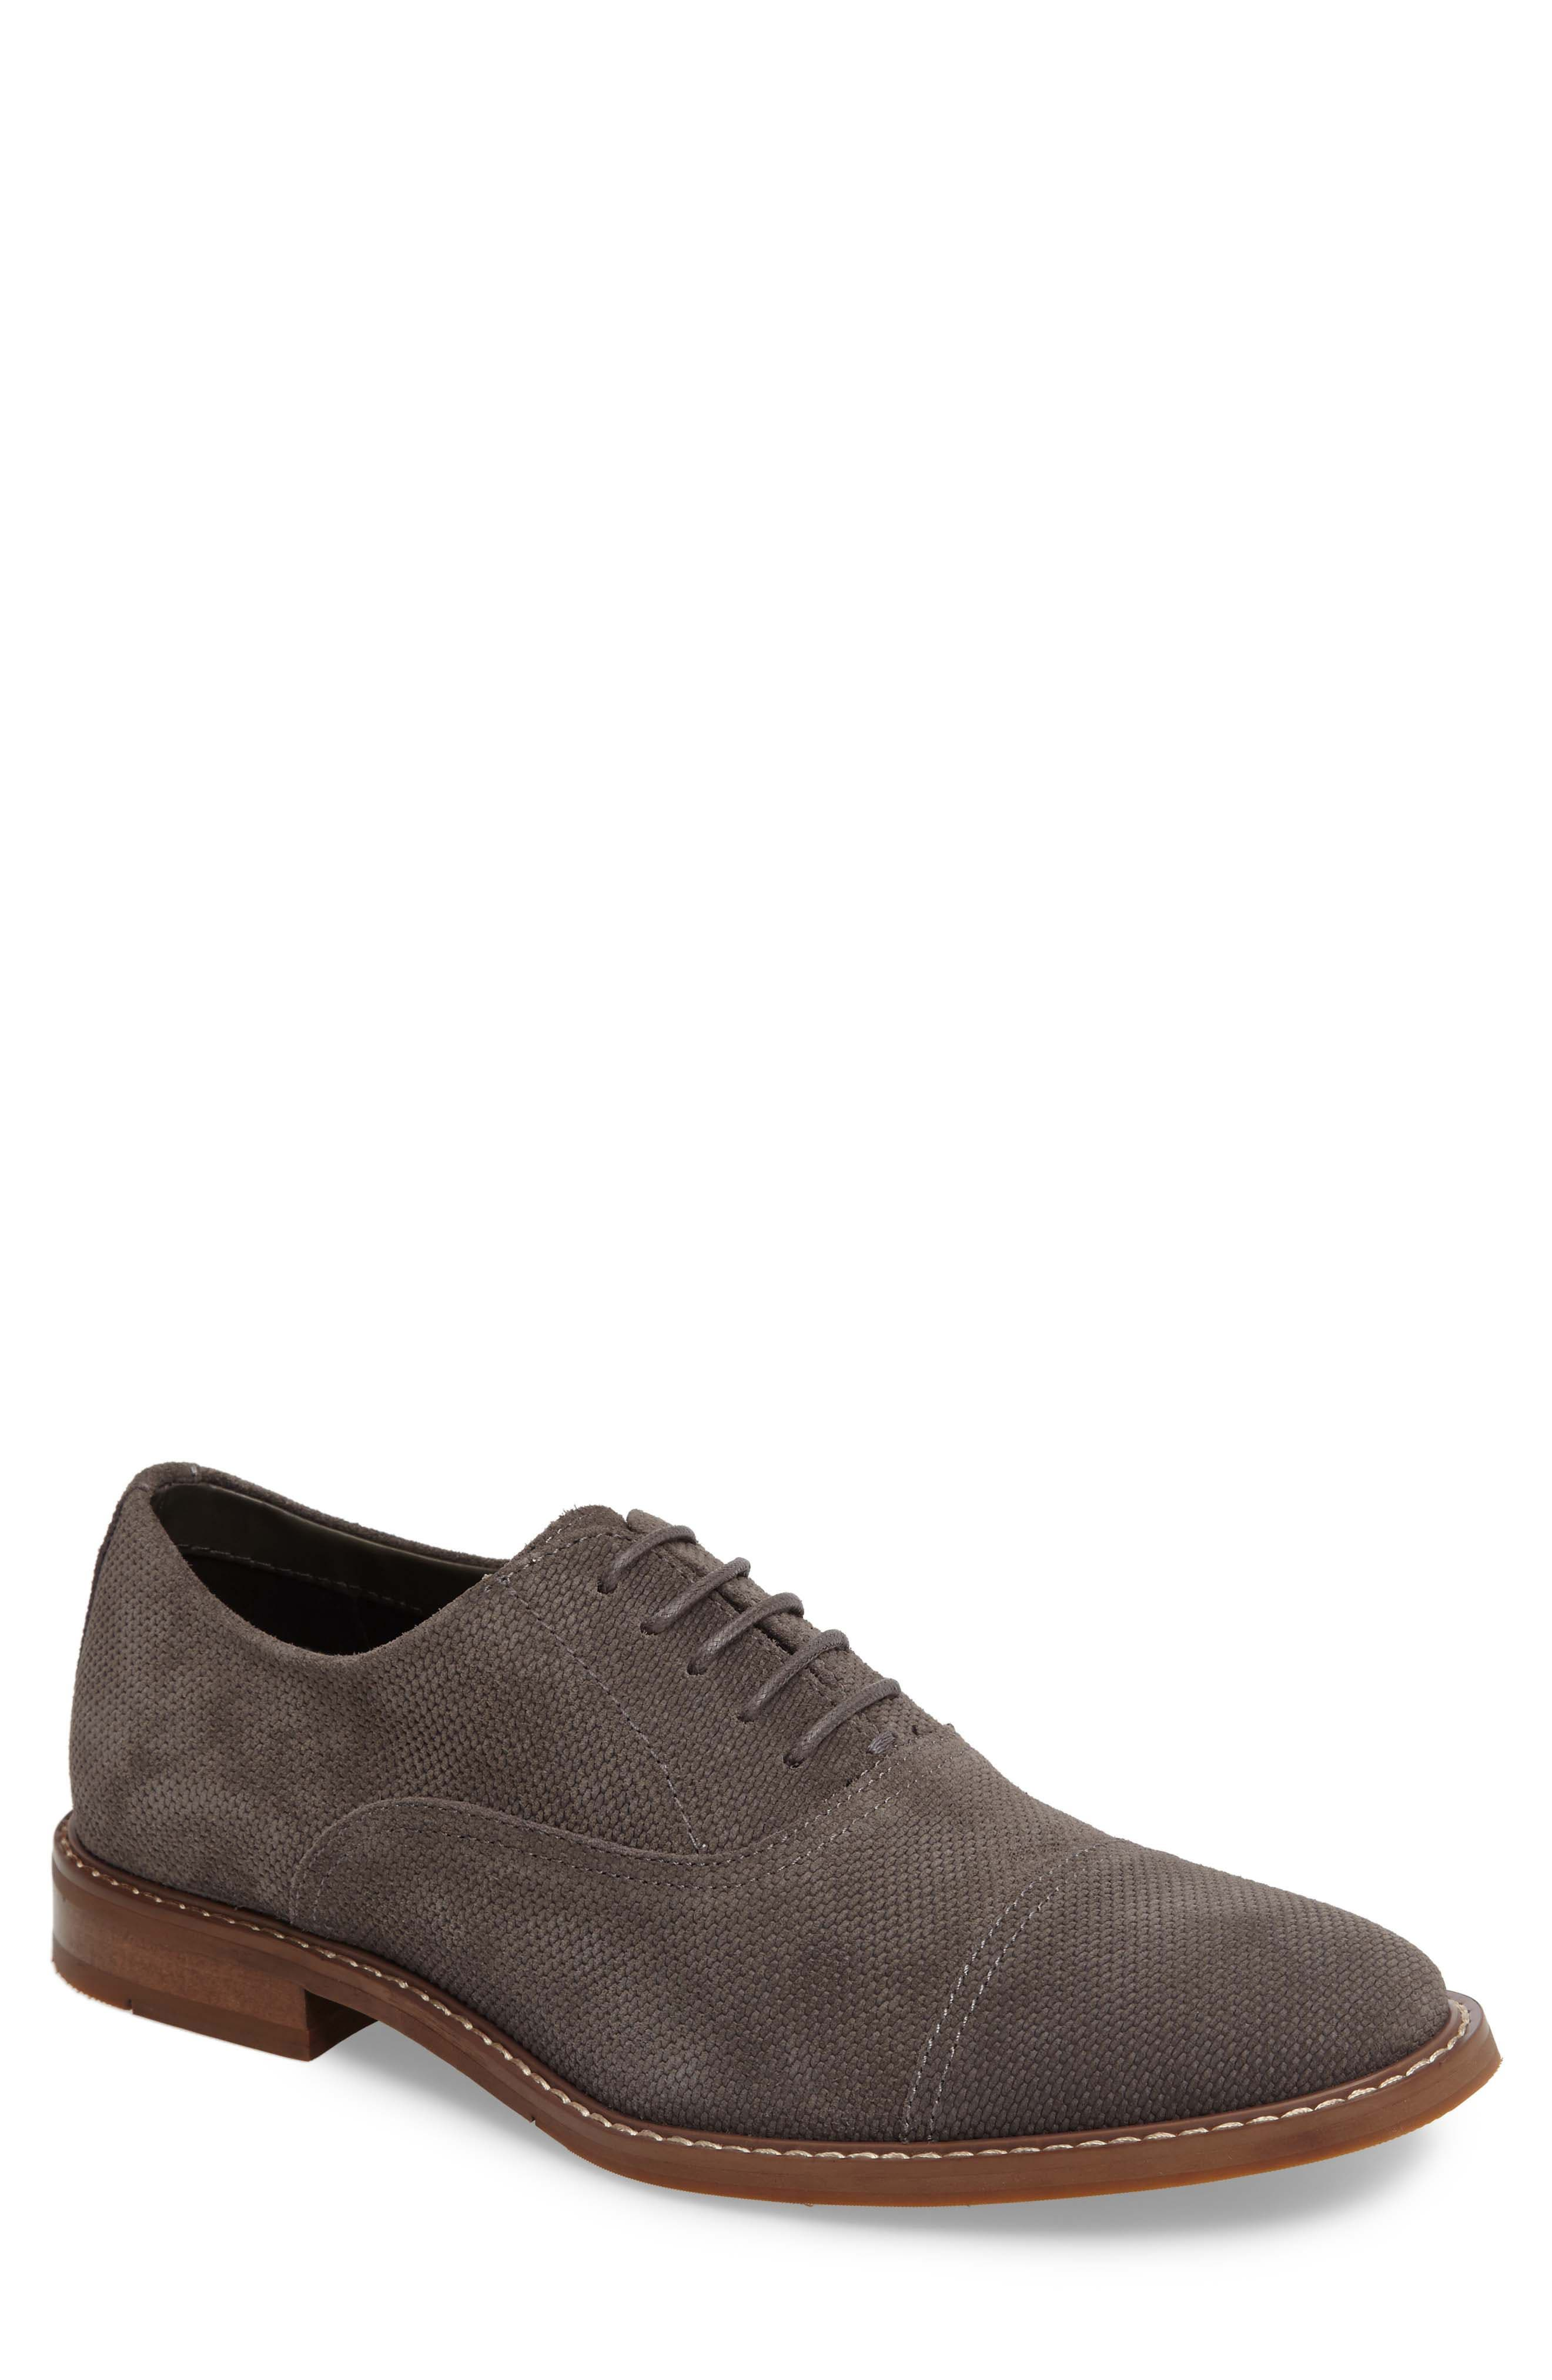 The Rail Ravenna Cap Toe Oxford (Men)